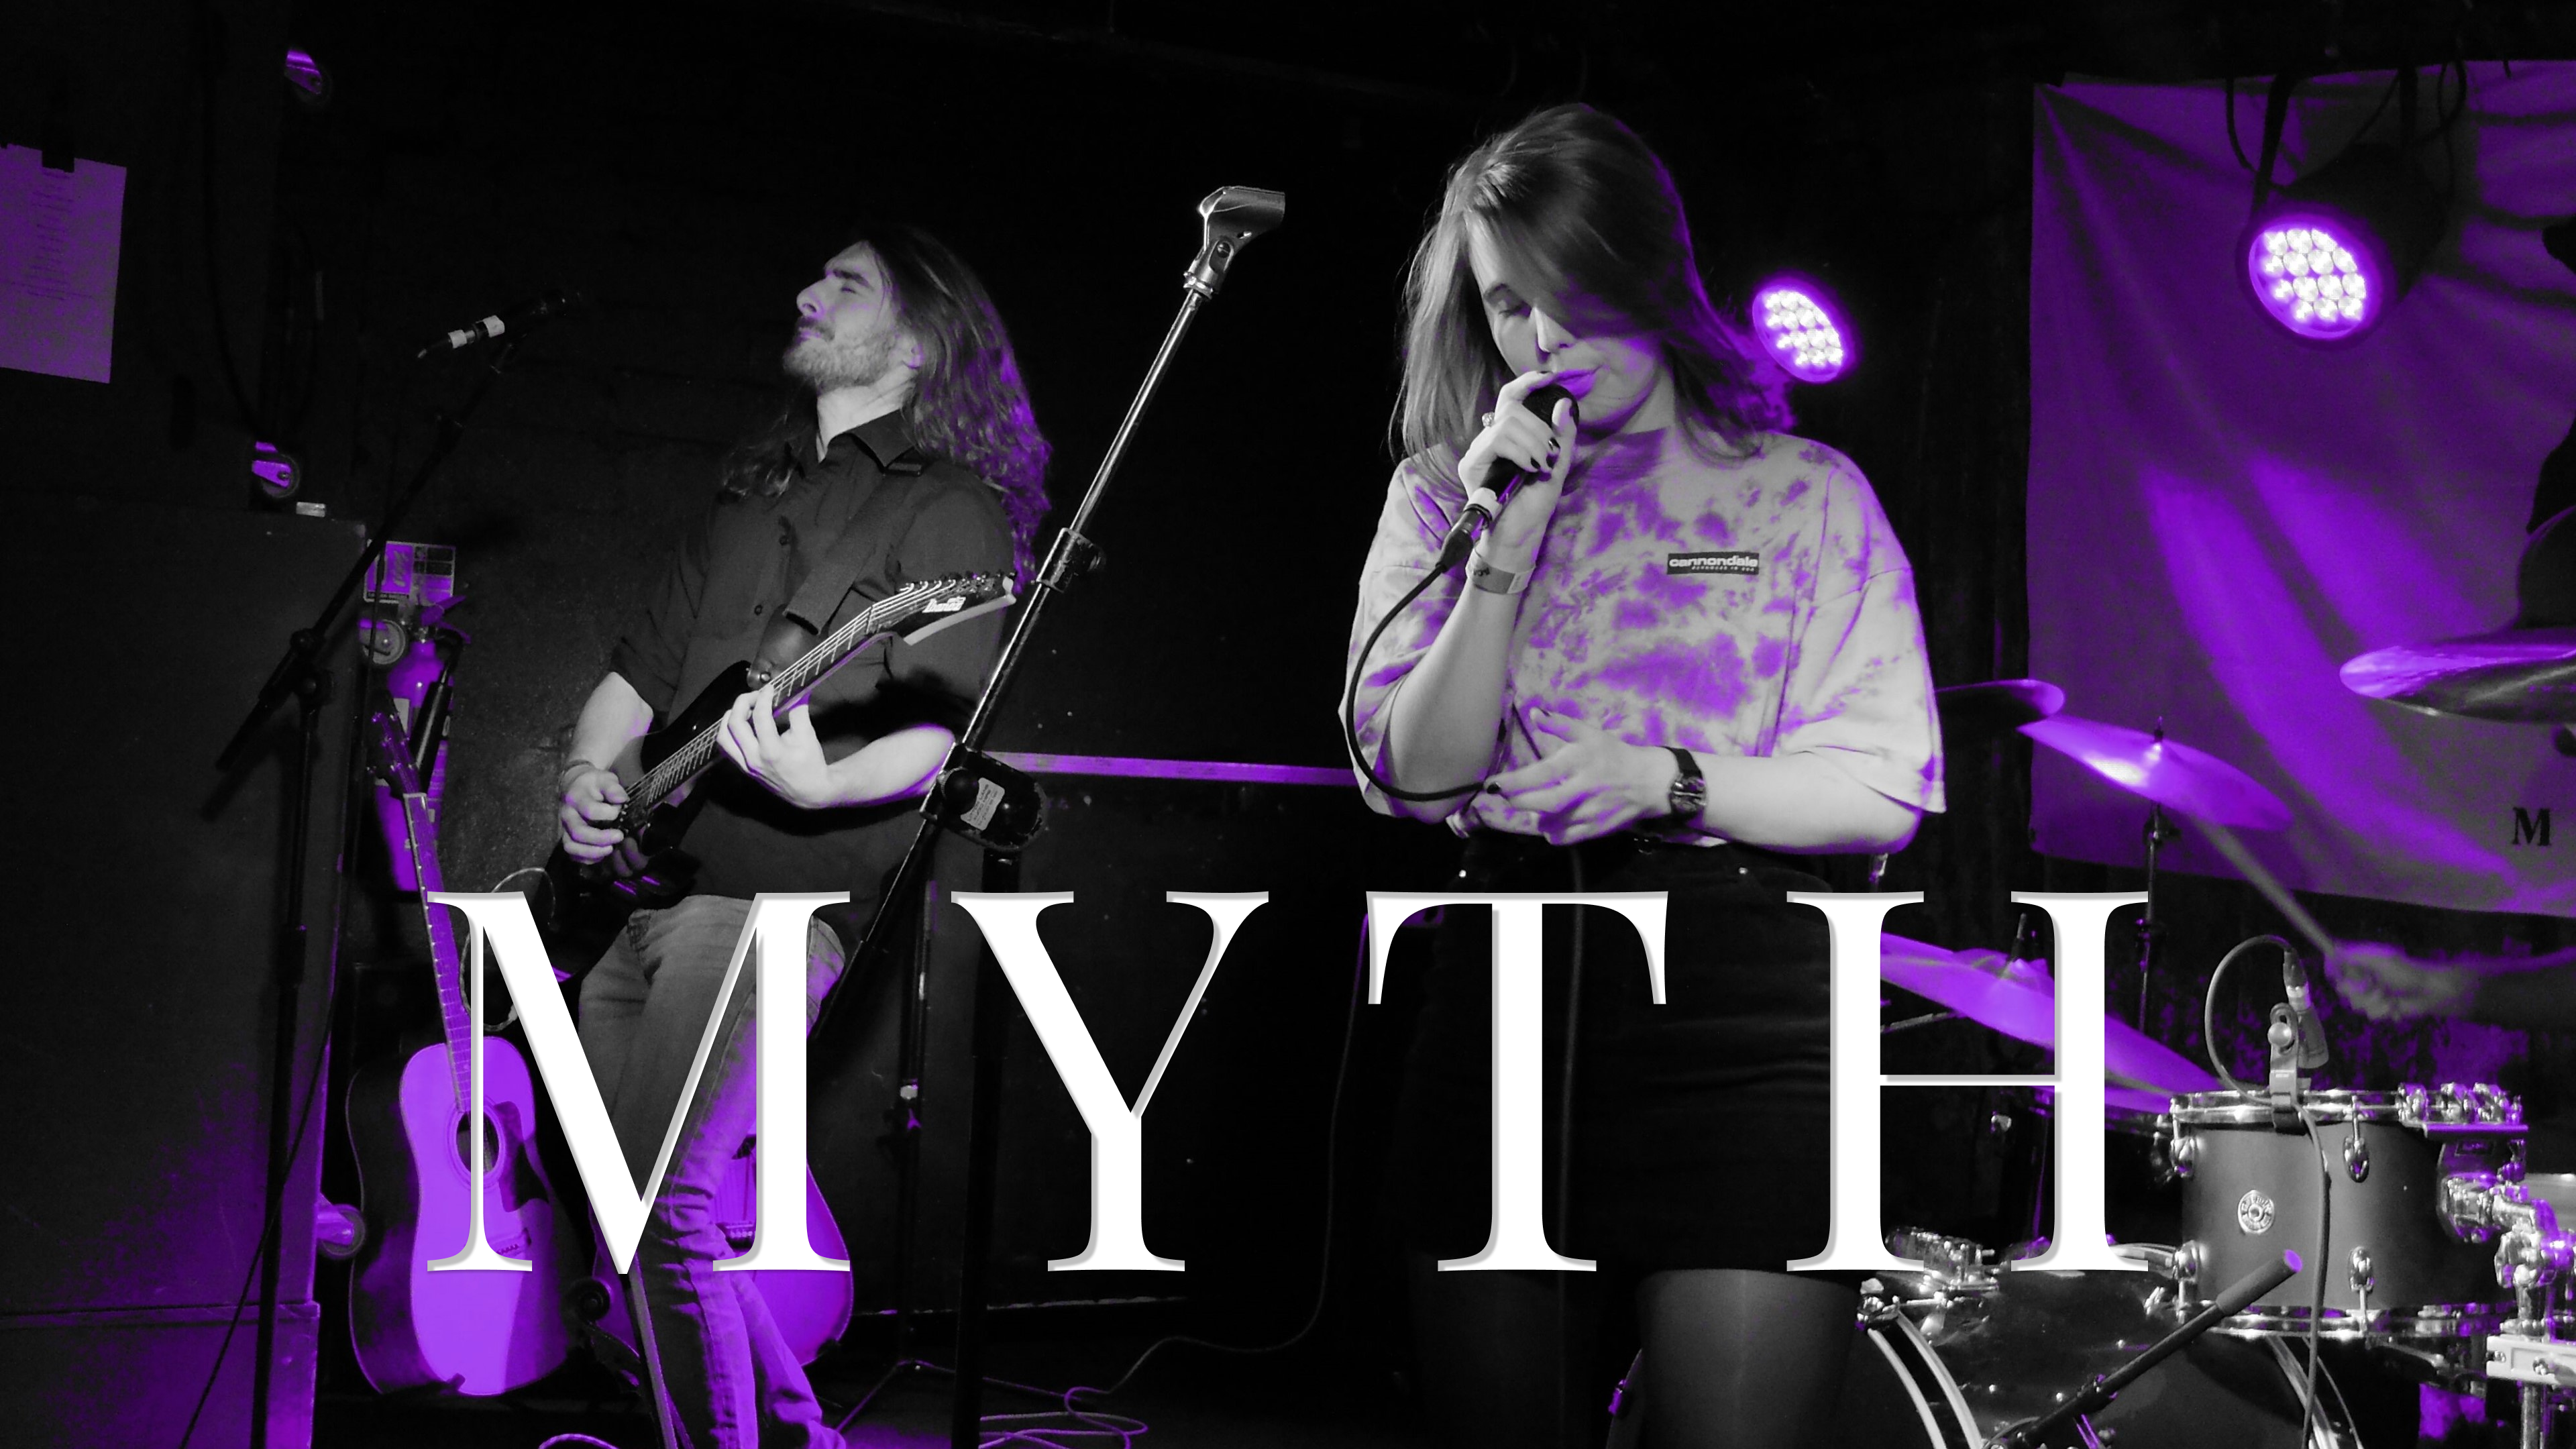 Myth band performing on stage